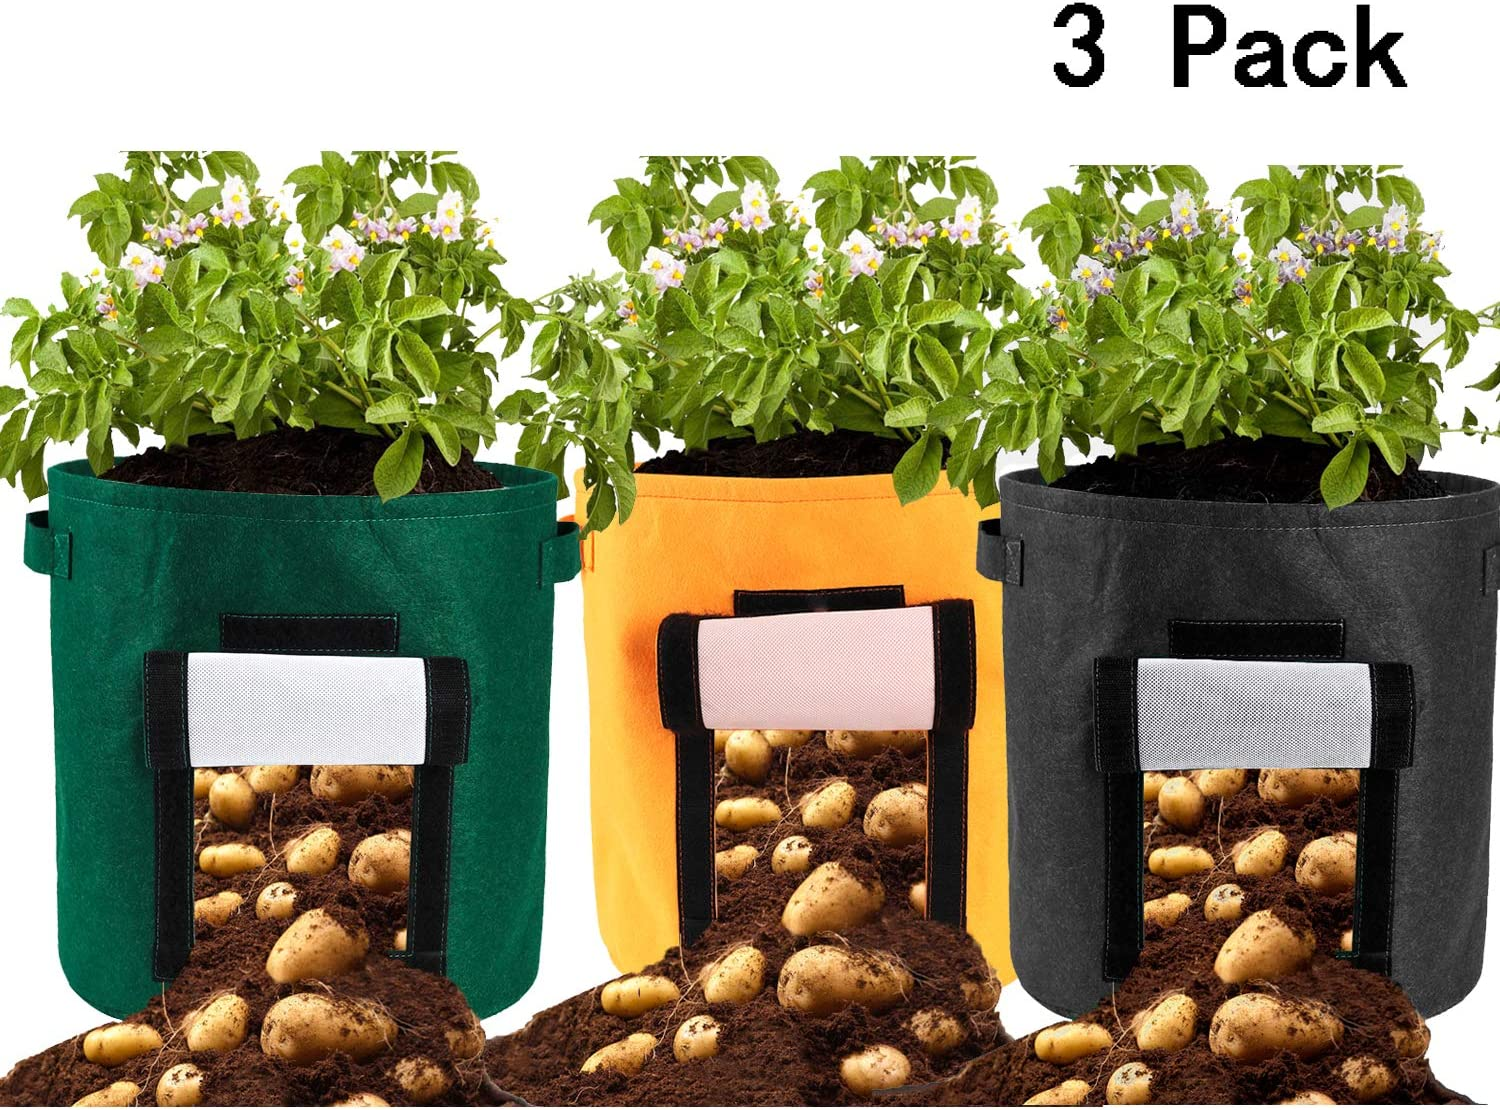 Alapaste 3 Pack Grow Bag 15 Gallon Potato Plant Grow Container Felt Waterproof Garden Planter Bag with Handles for Grow Multi-Species Vegetables Carrot,Tomato